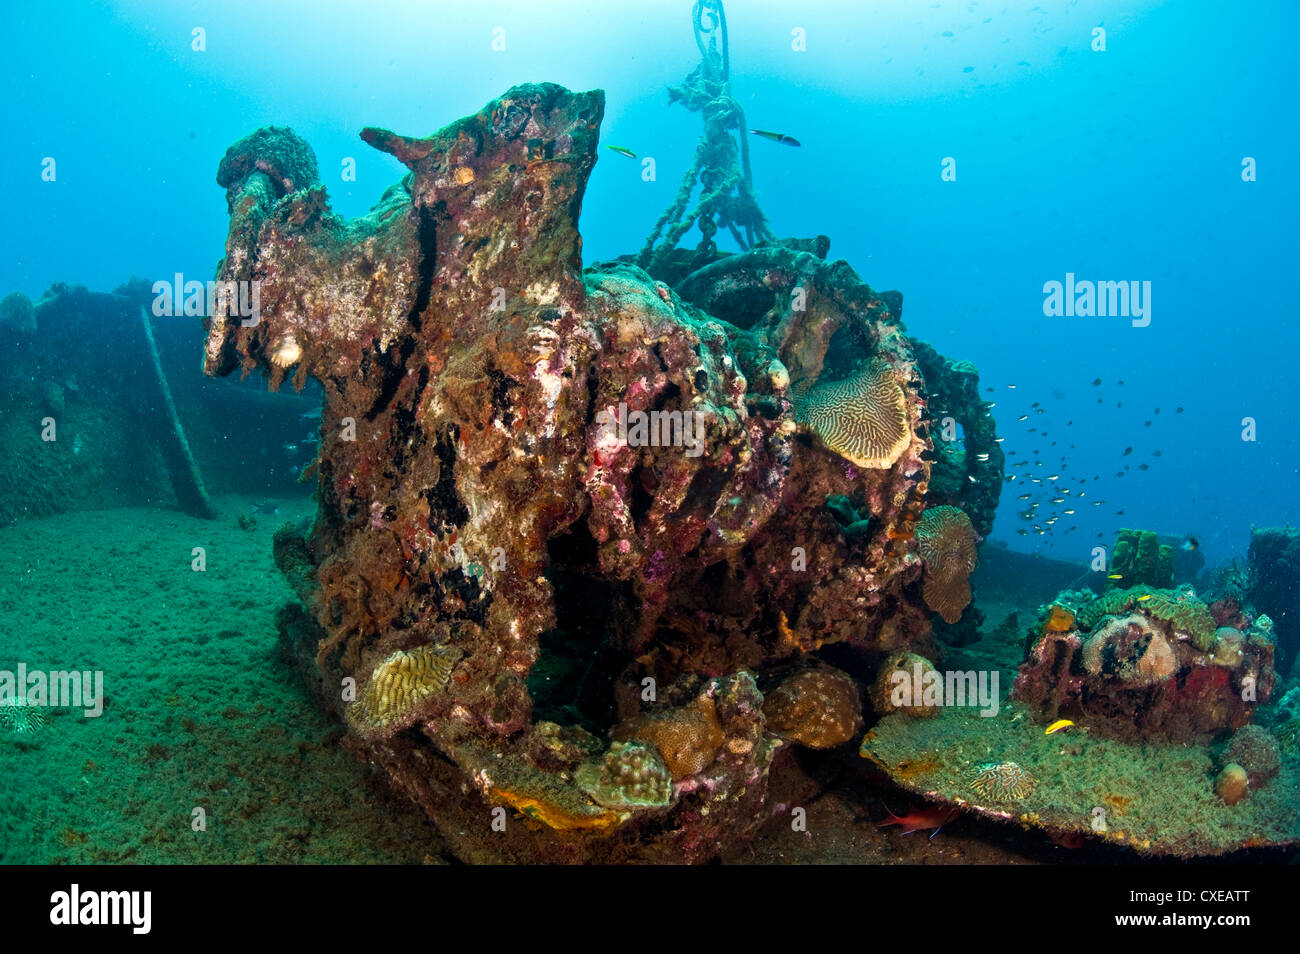 Gear on the deck of the wreck of the Lesleen M, a freighter sunk as an artificial reef in 1985 off Anse Cochon Bay, - Stock Image